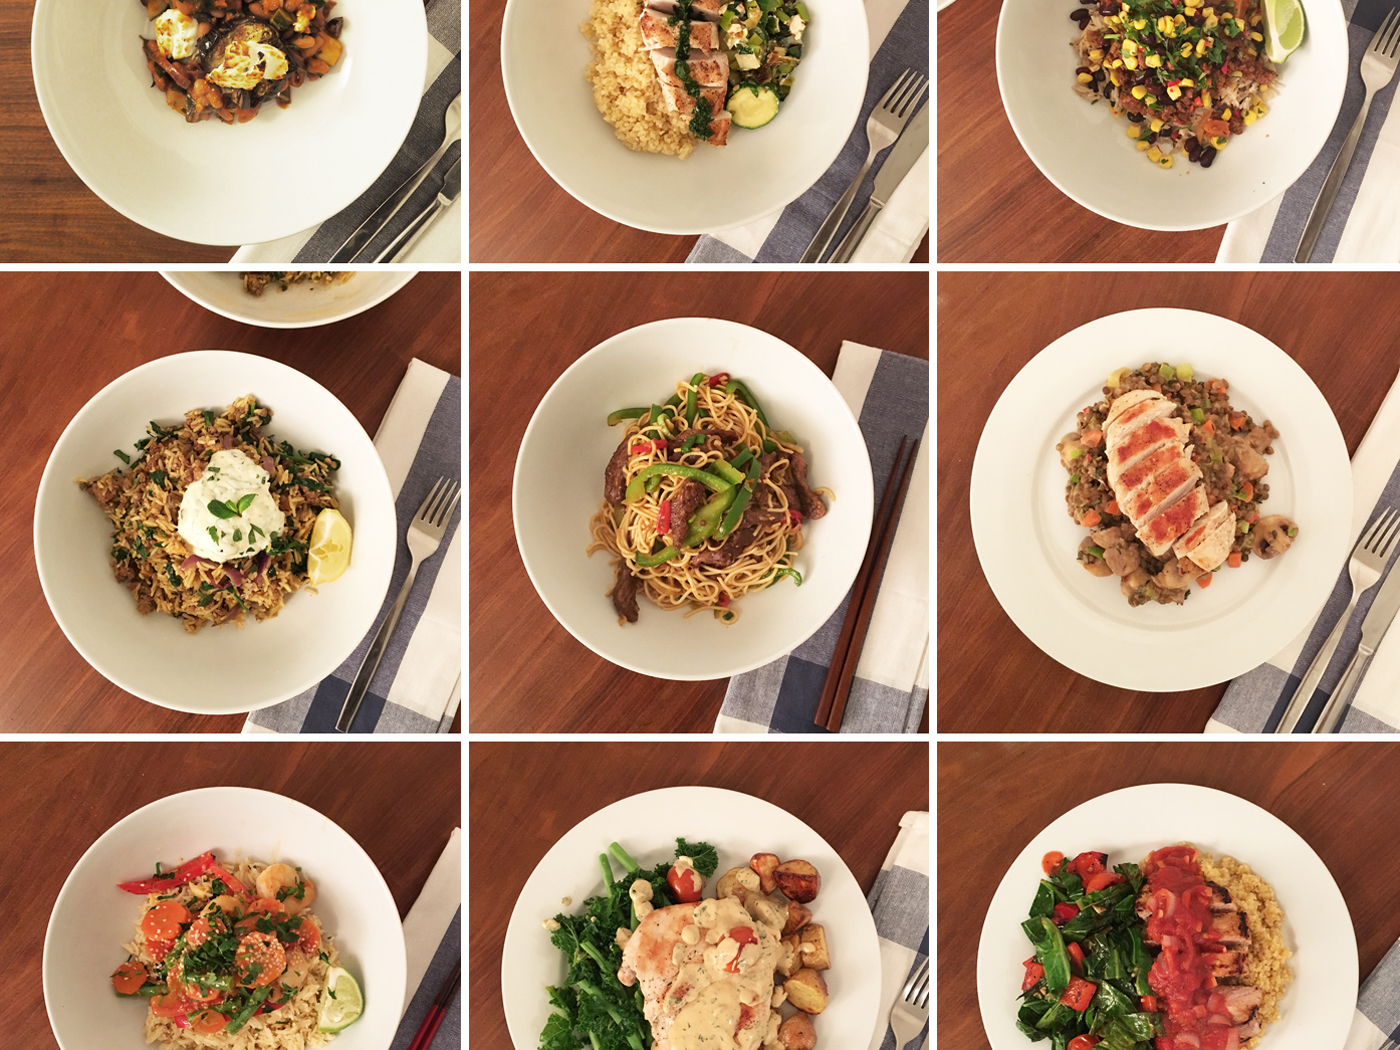 Warranty Register Hellofresh Meal Kit Delivery Service